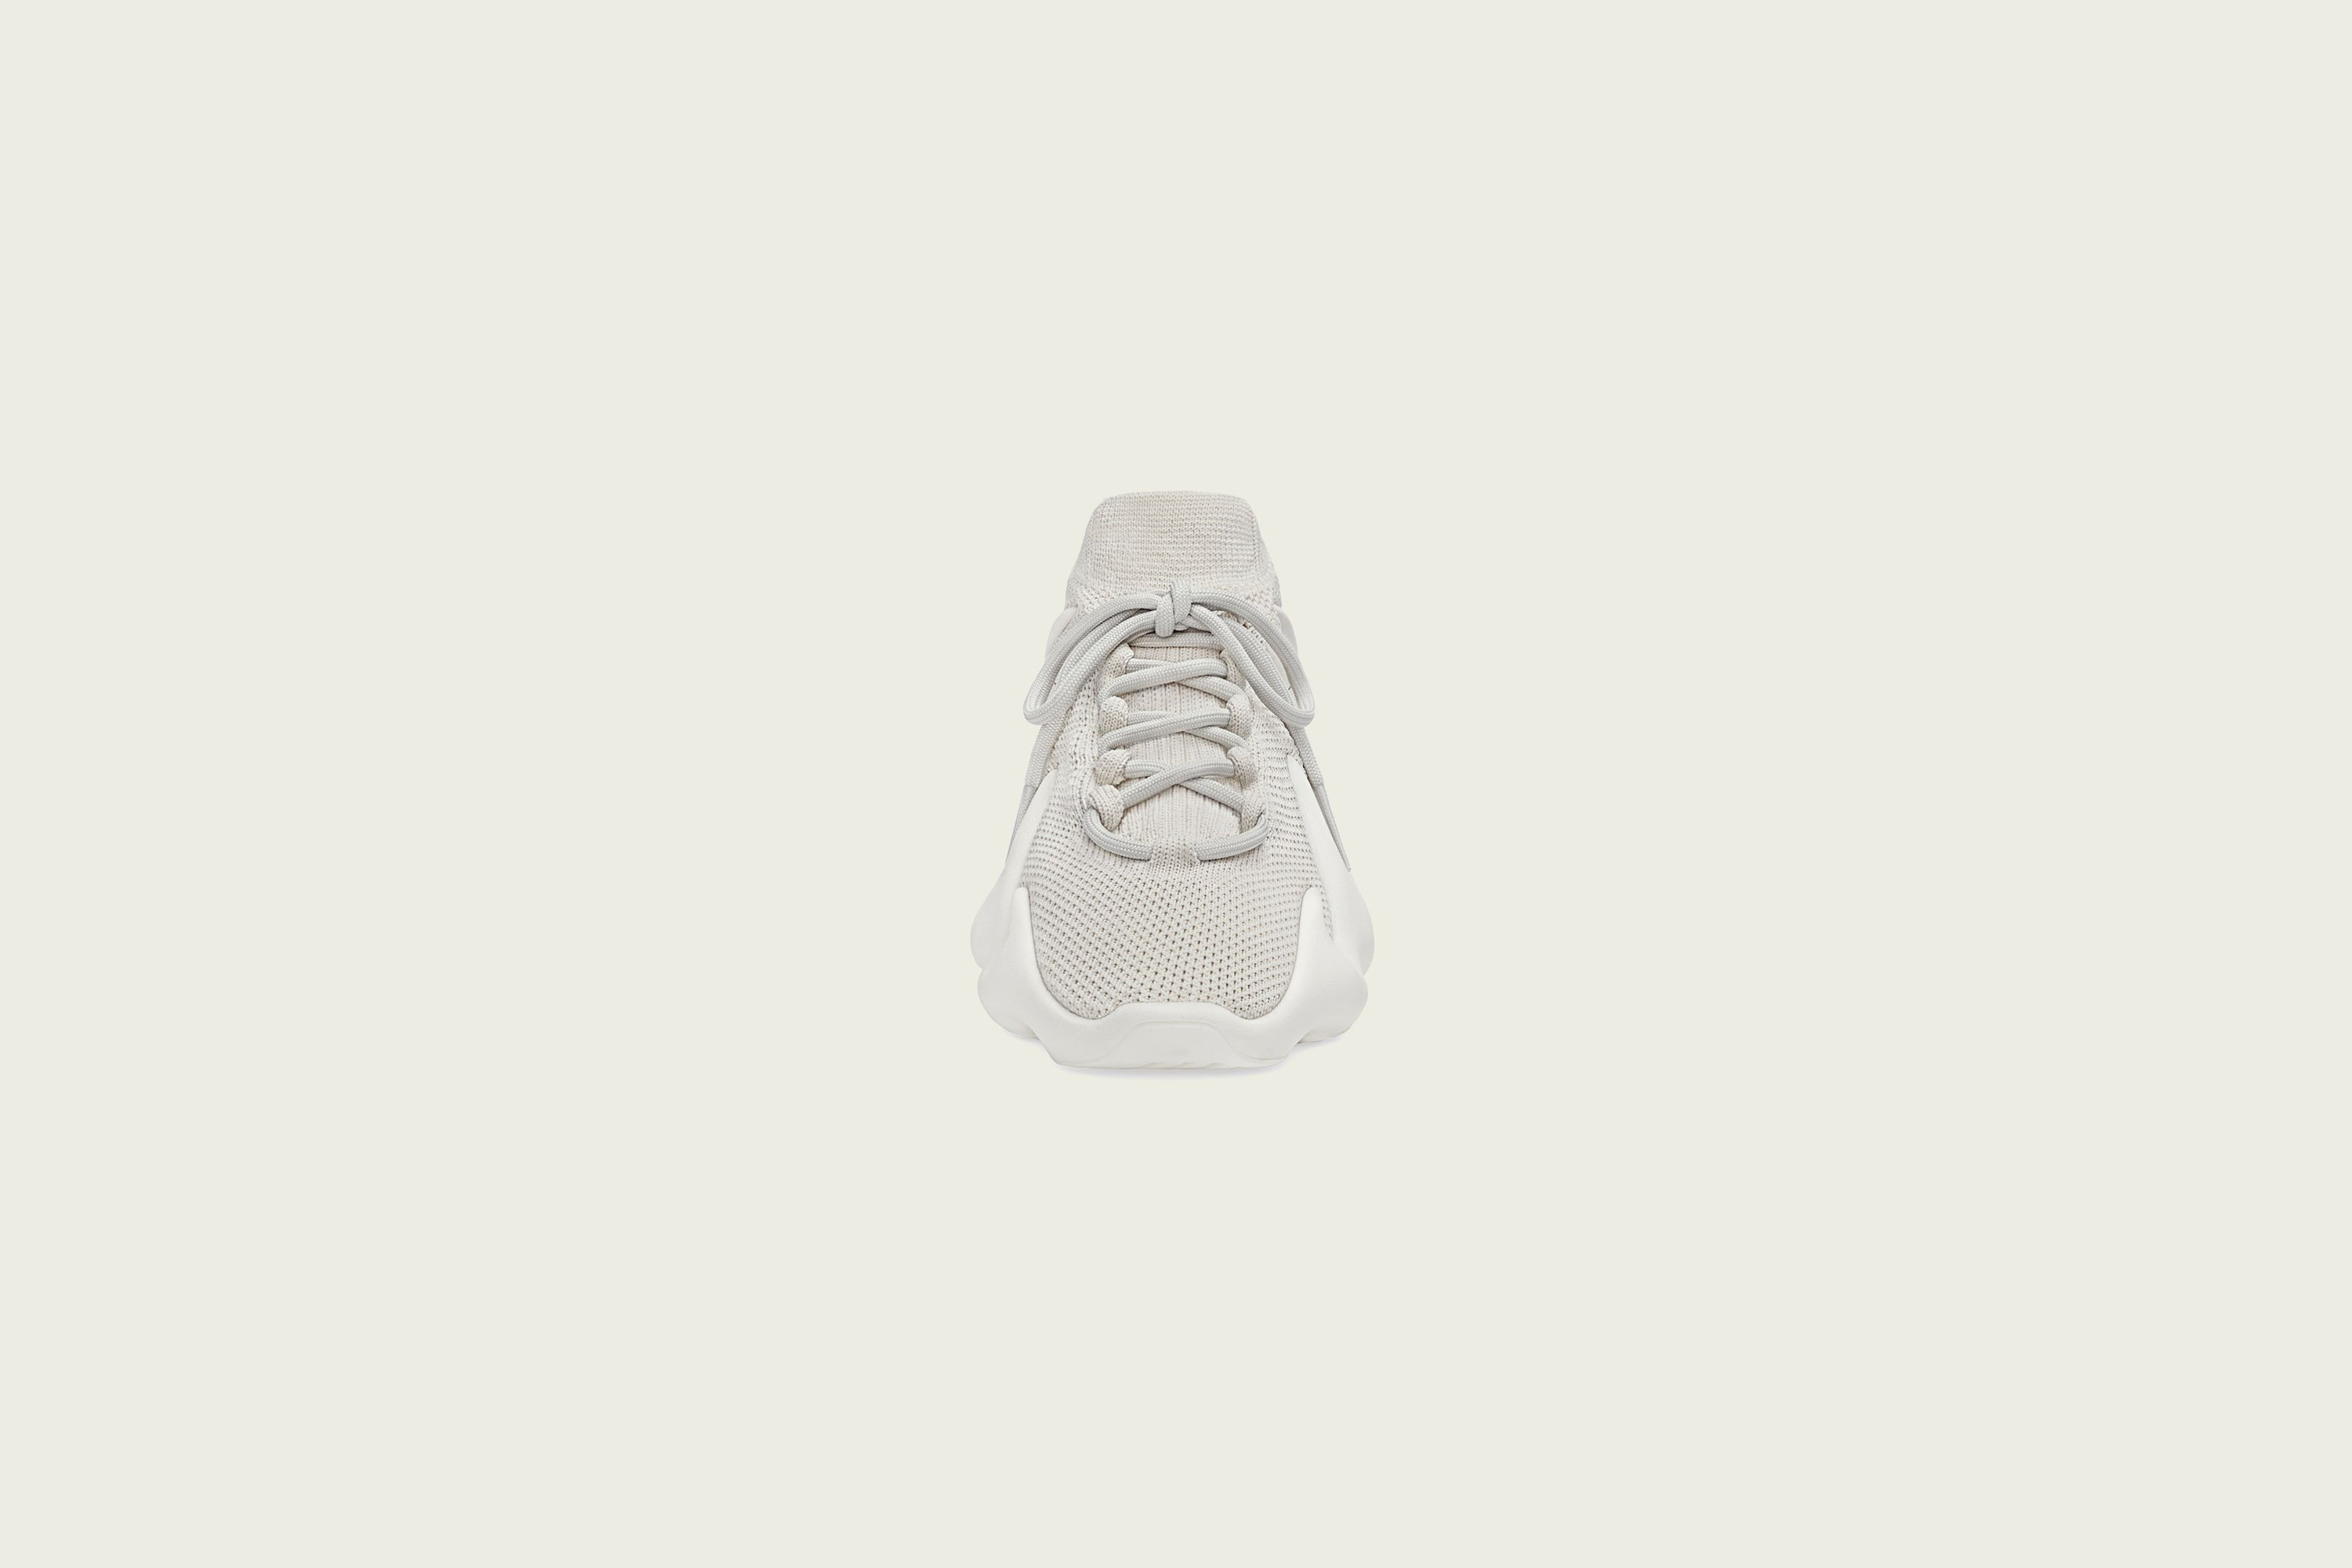 adidas - Yeezy 450 - Cloud White - Up There